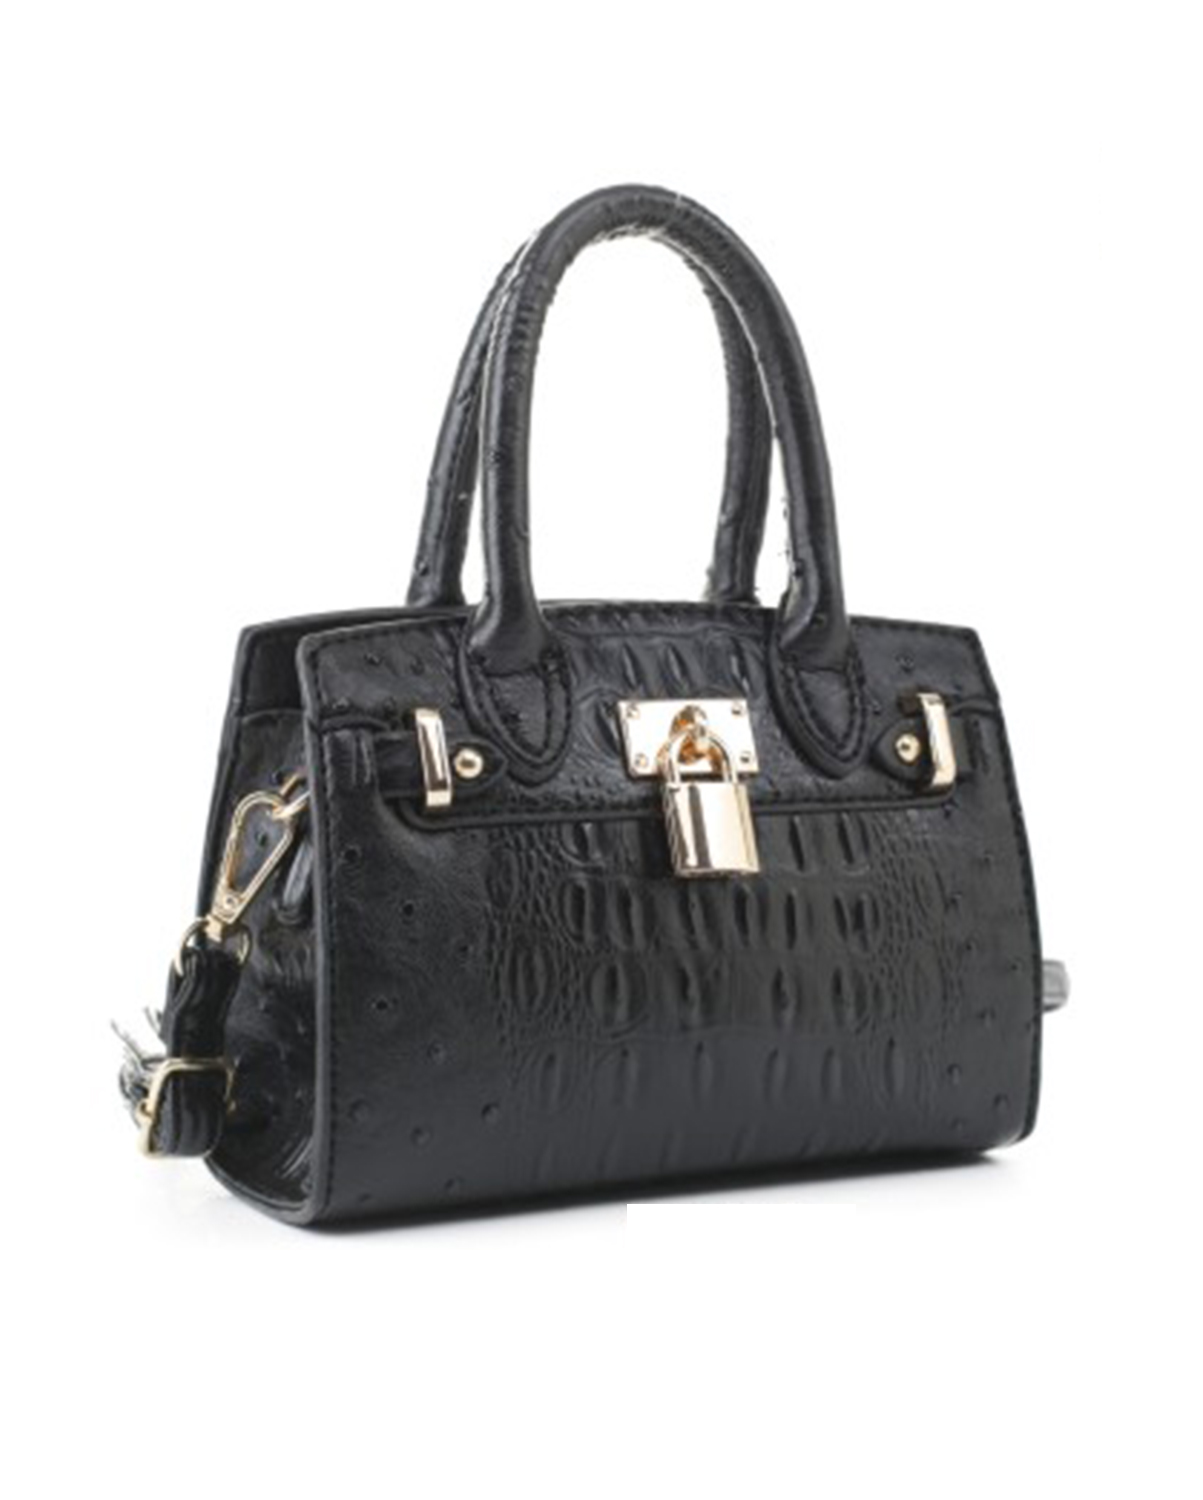 BJ6286N(BK)-Wholesale-Fashion-Leatherette-Small-Satchel-Handbag-Convertible-Style(0).jpg